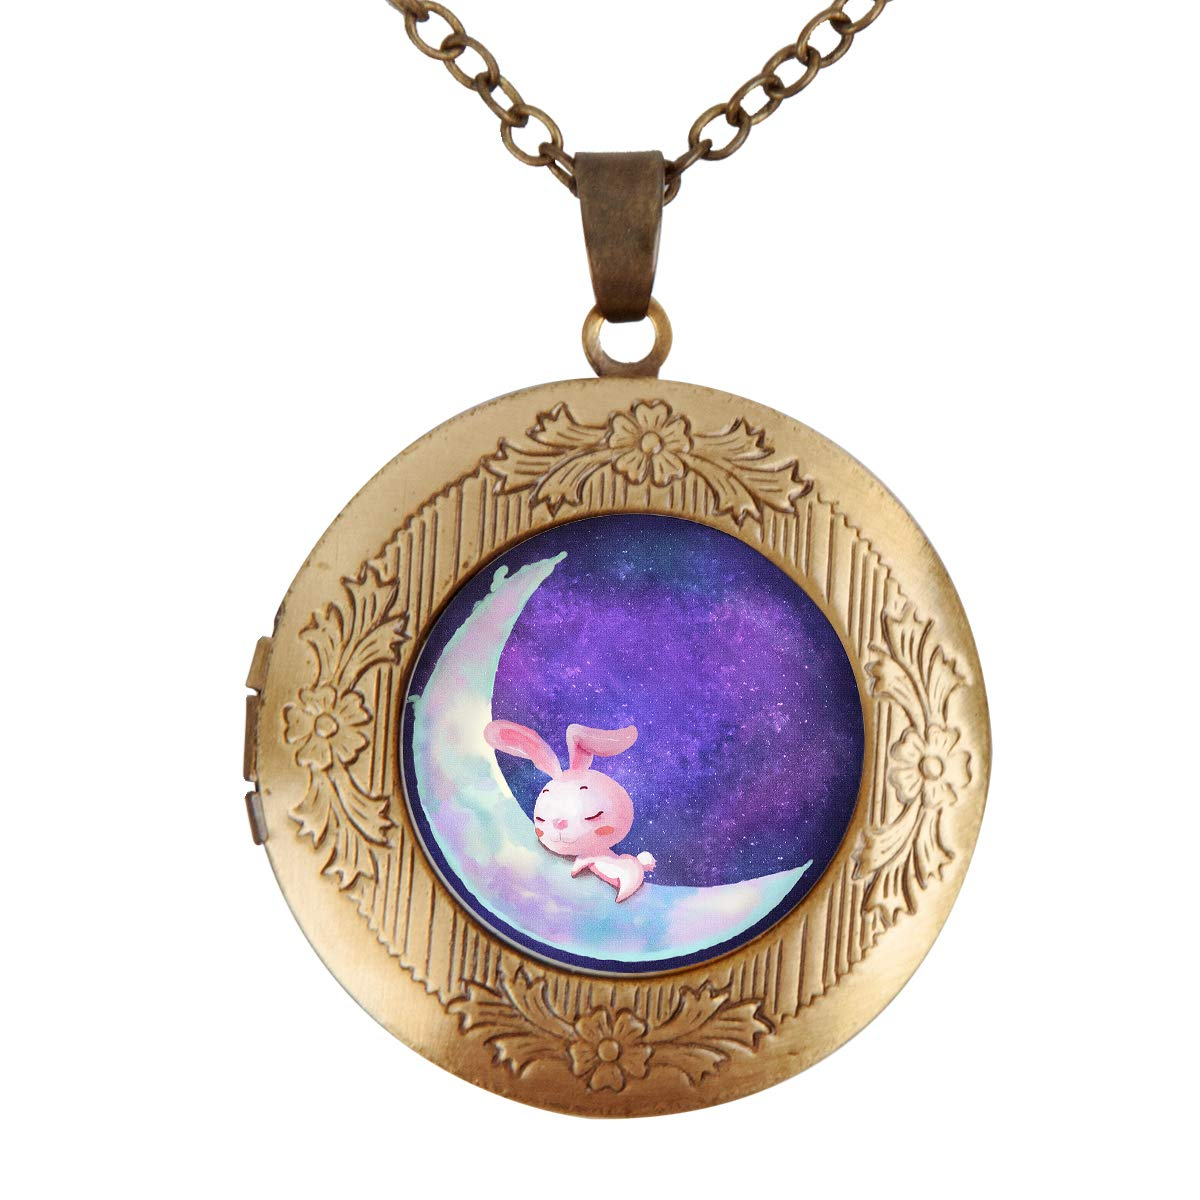 Fangship Pink Rabbit Locket Pendant Stainless Steel Necklace Round Box Chain Jewelry for Women Girl Boy Men 1.18 Inch Includes Adjustable Length Cable Chain